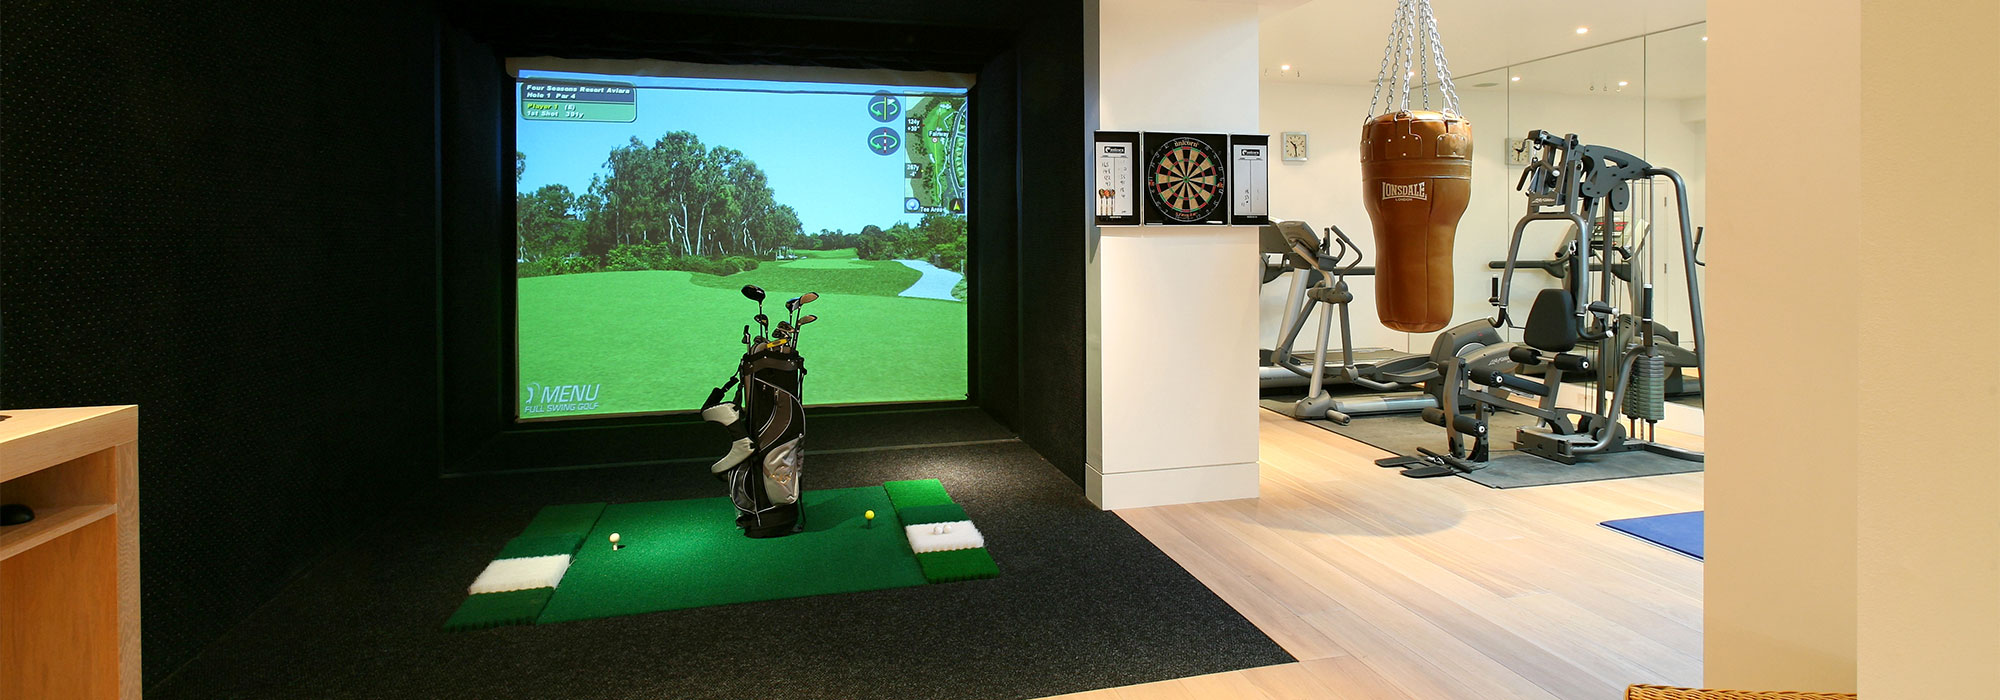 Virtual Golf & Gym Basement